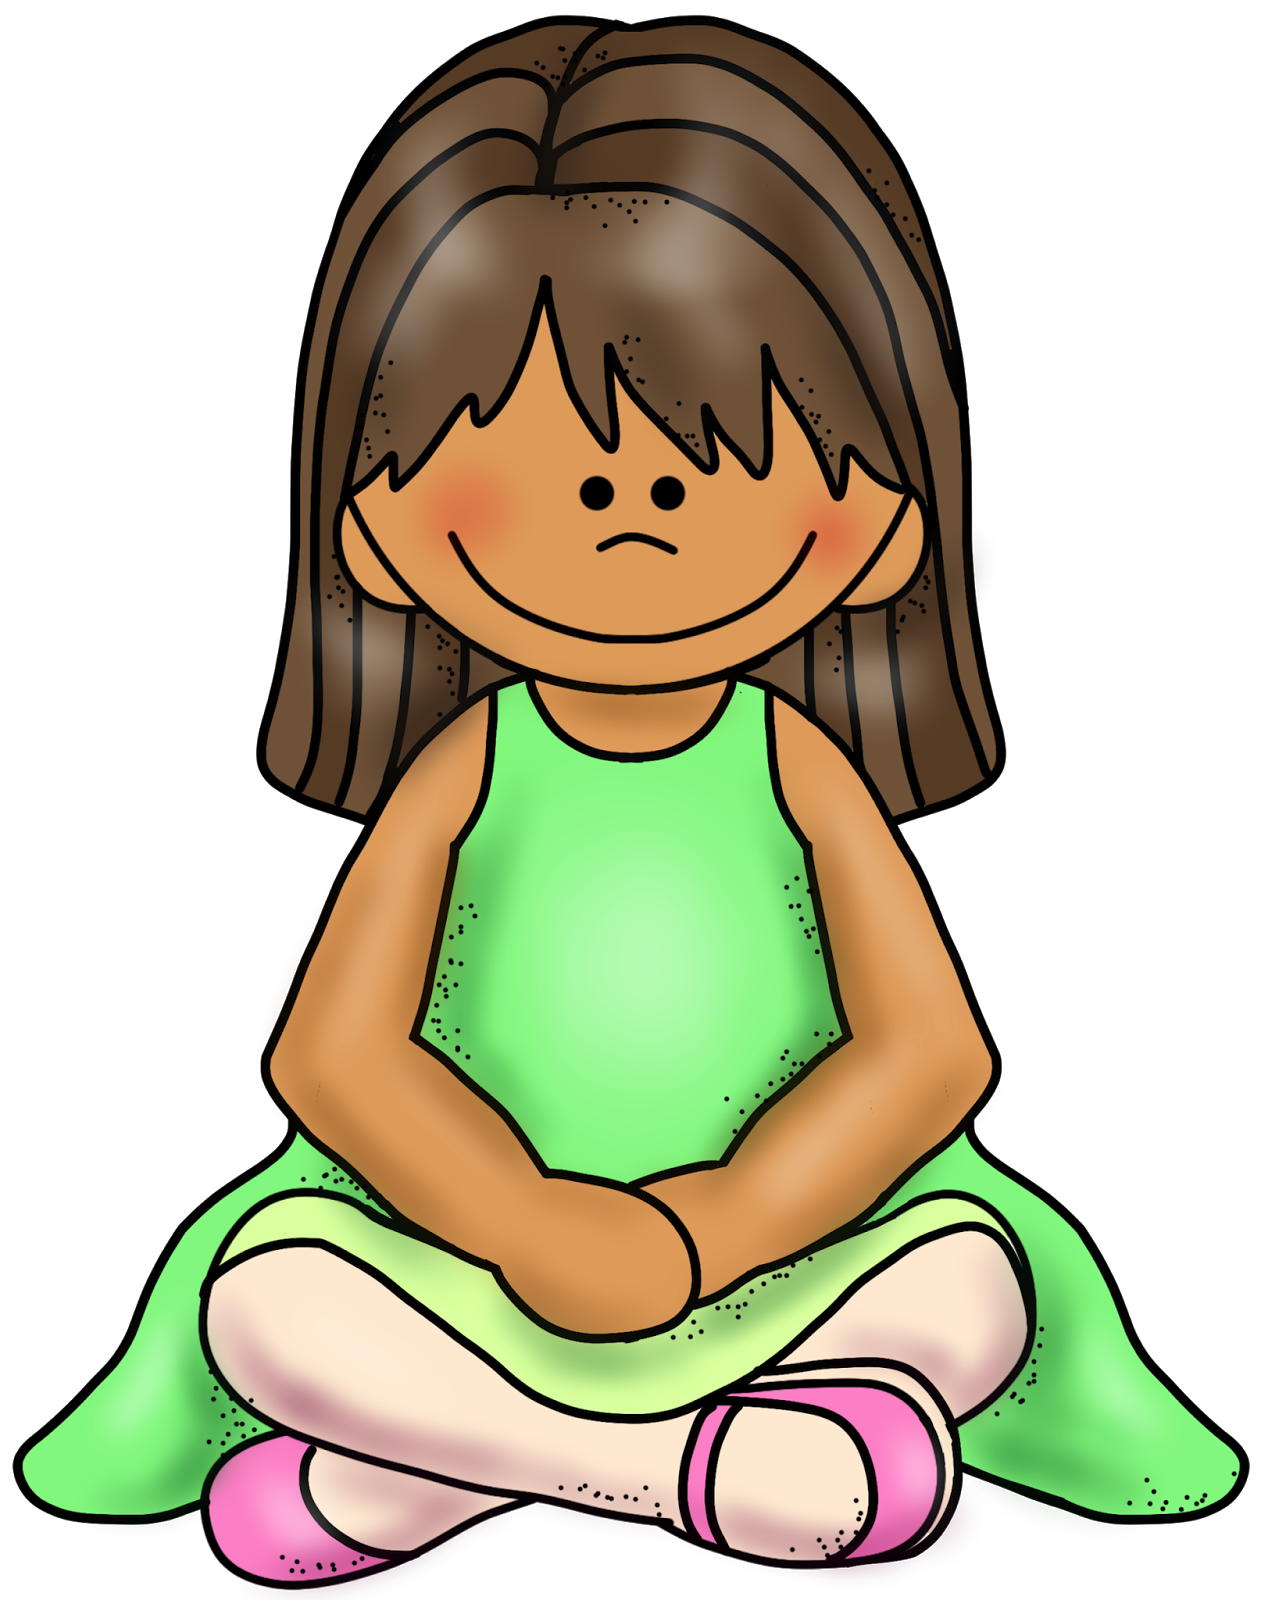 Sitting Criss Cross Applesauce Clipart